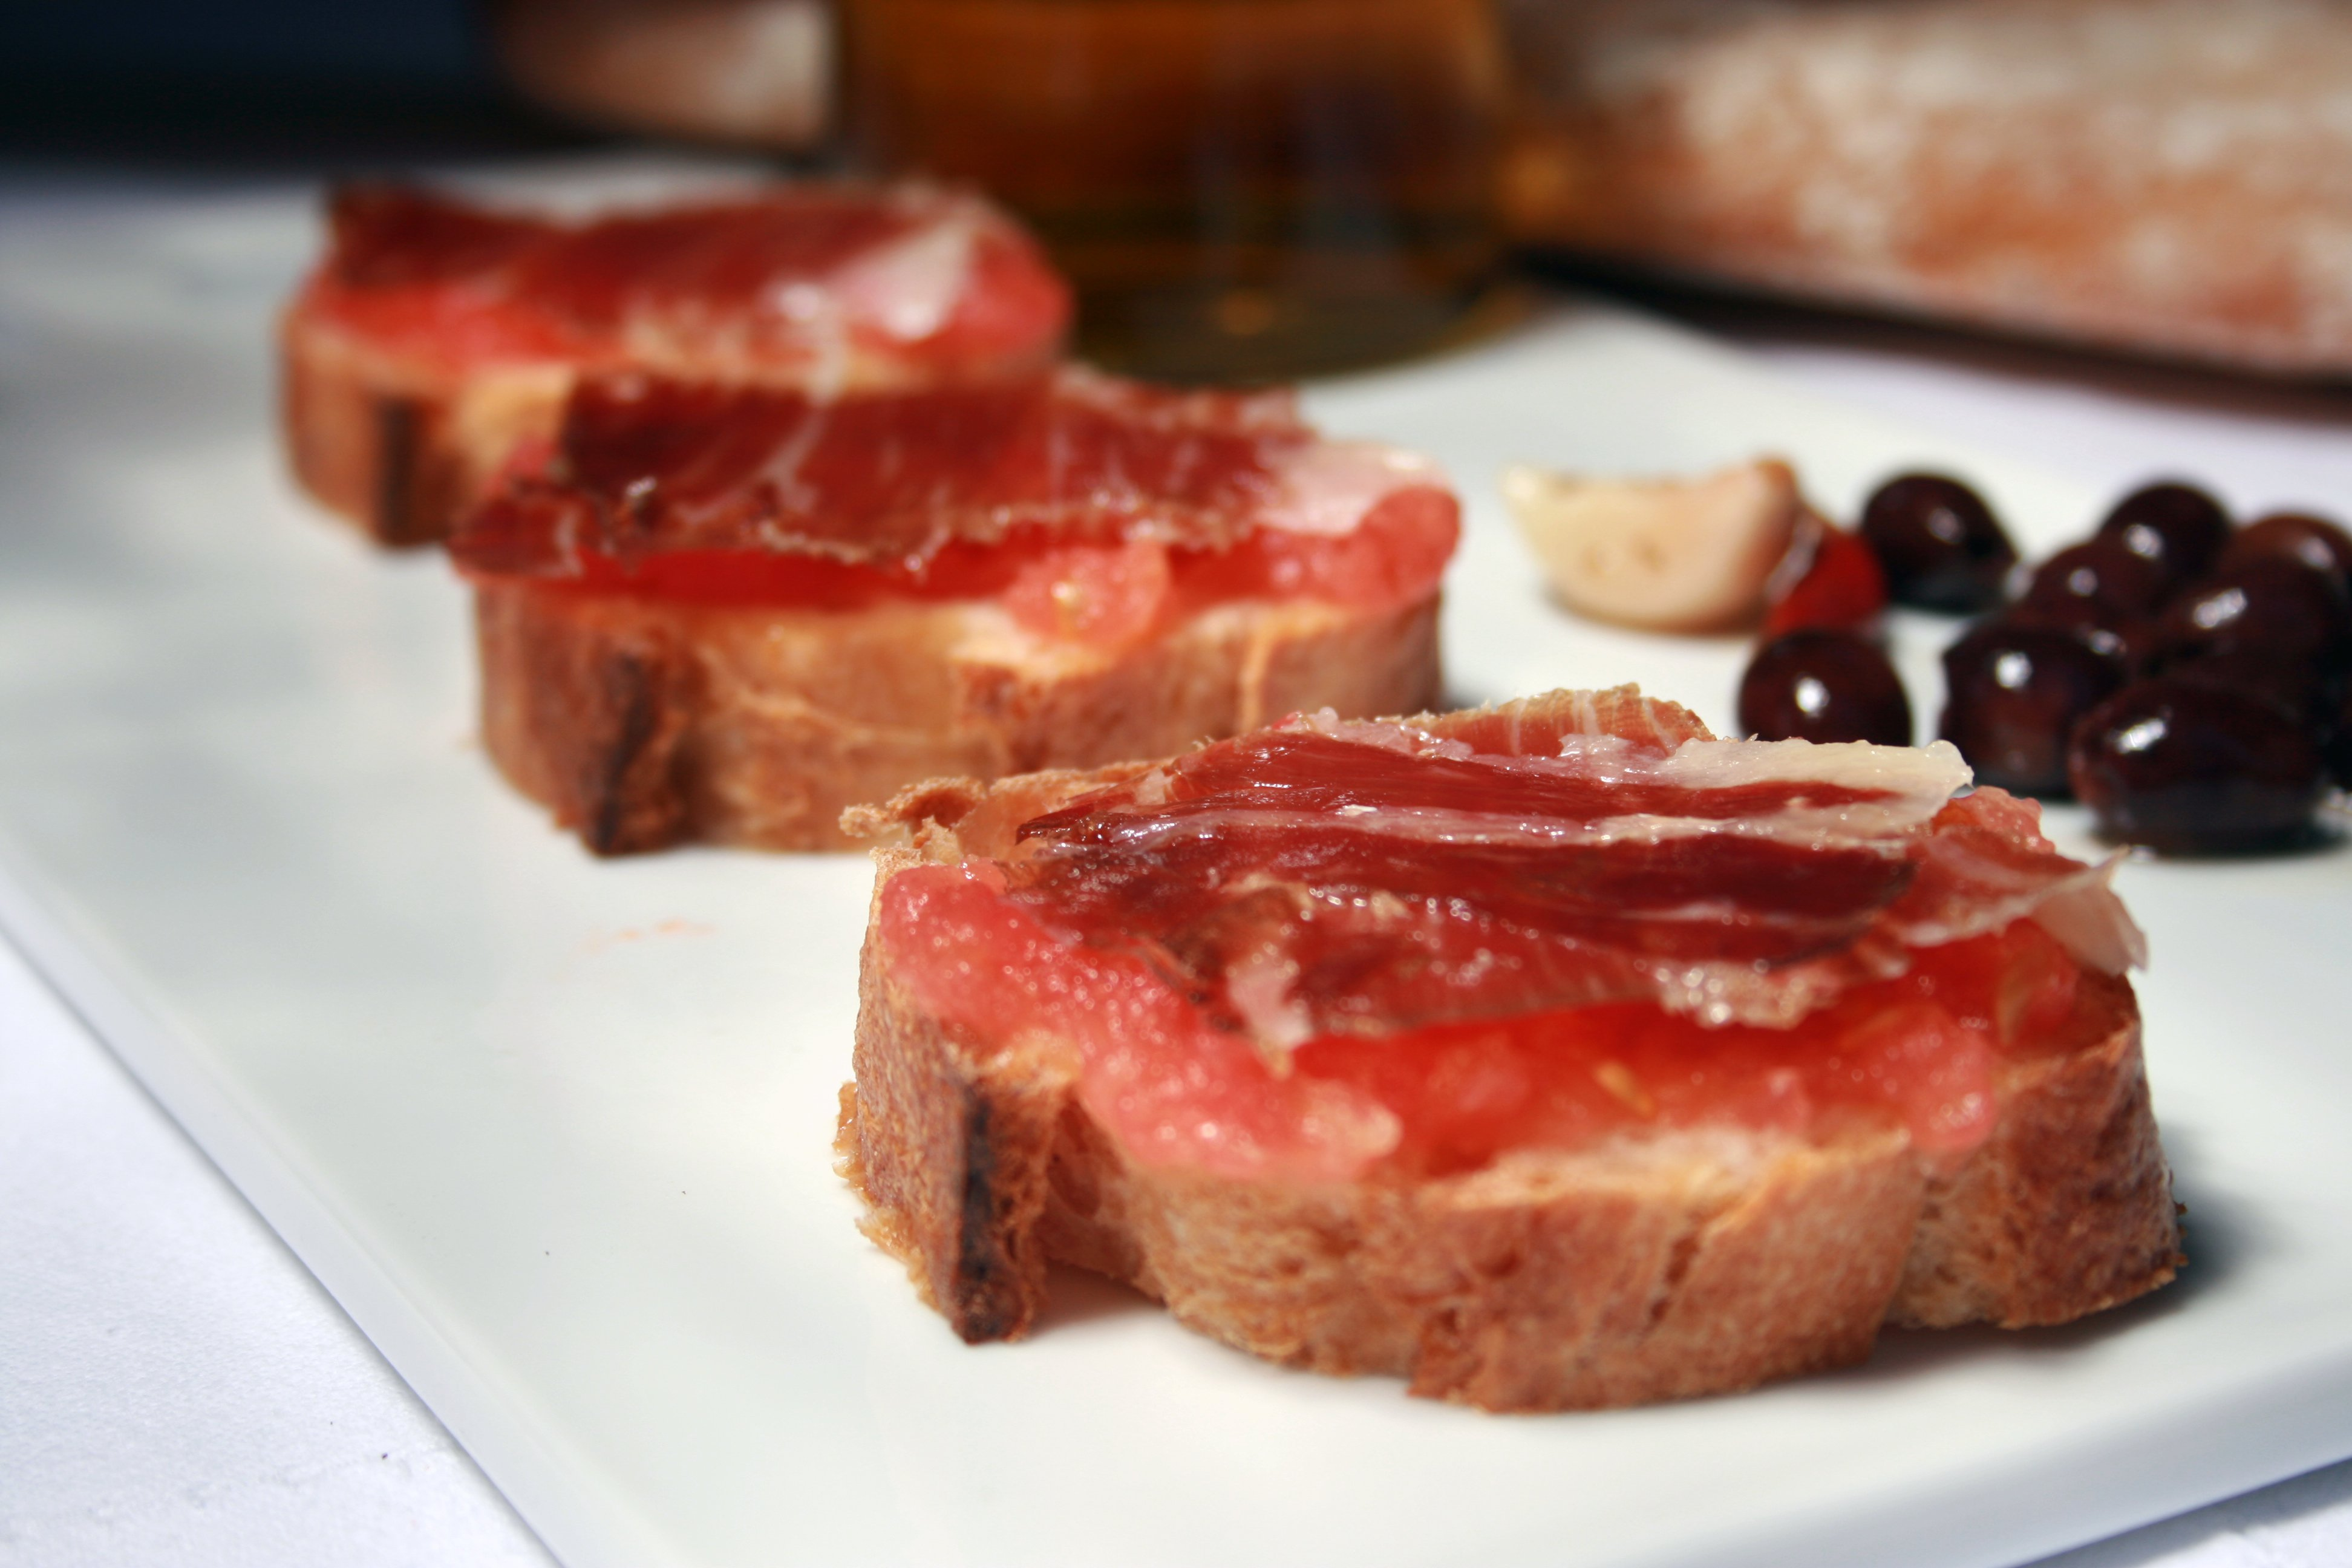 Tomato with Jamon & bread